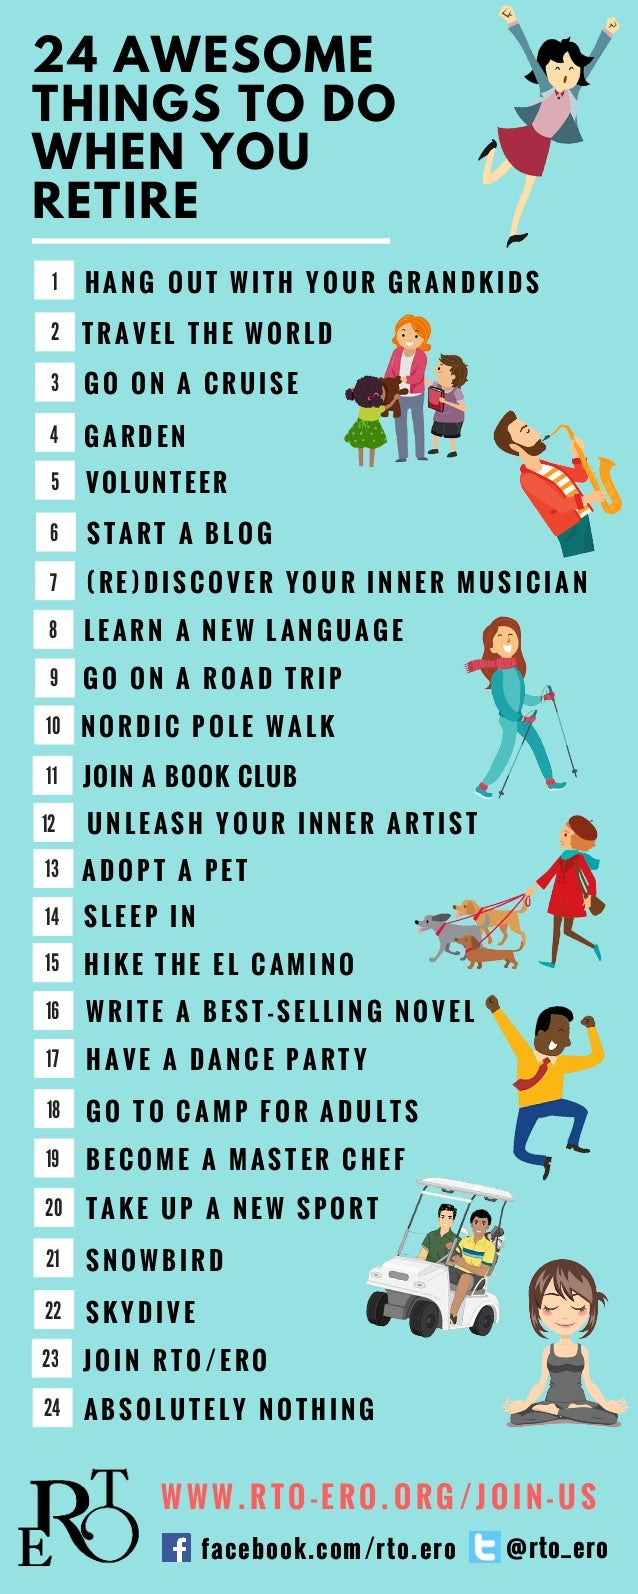 20 Awesome Things to do When You Retire